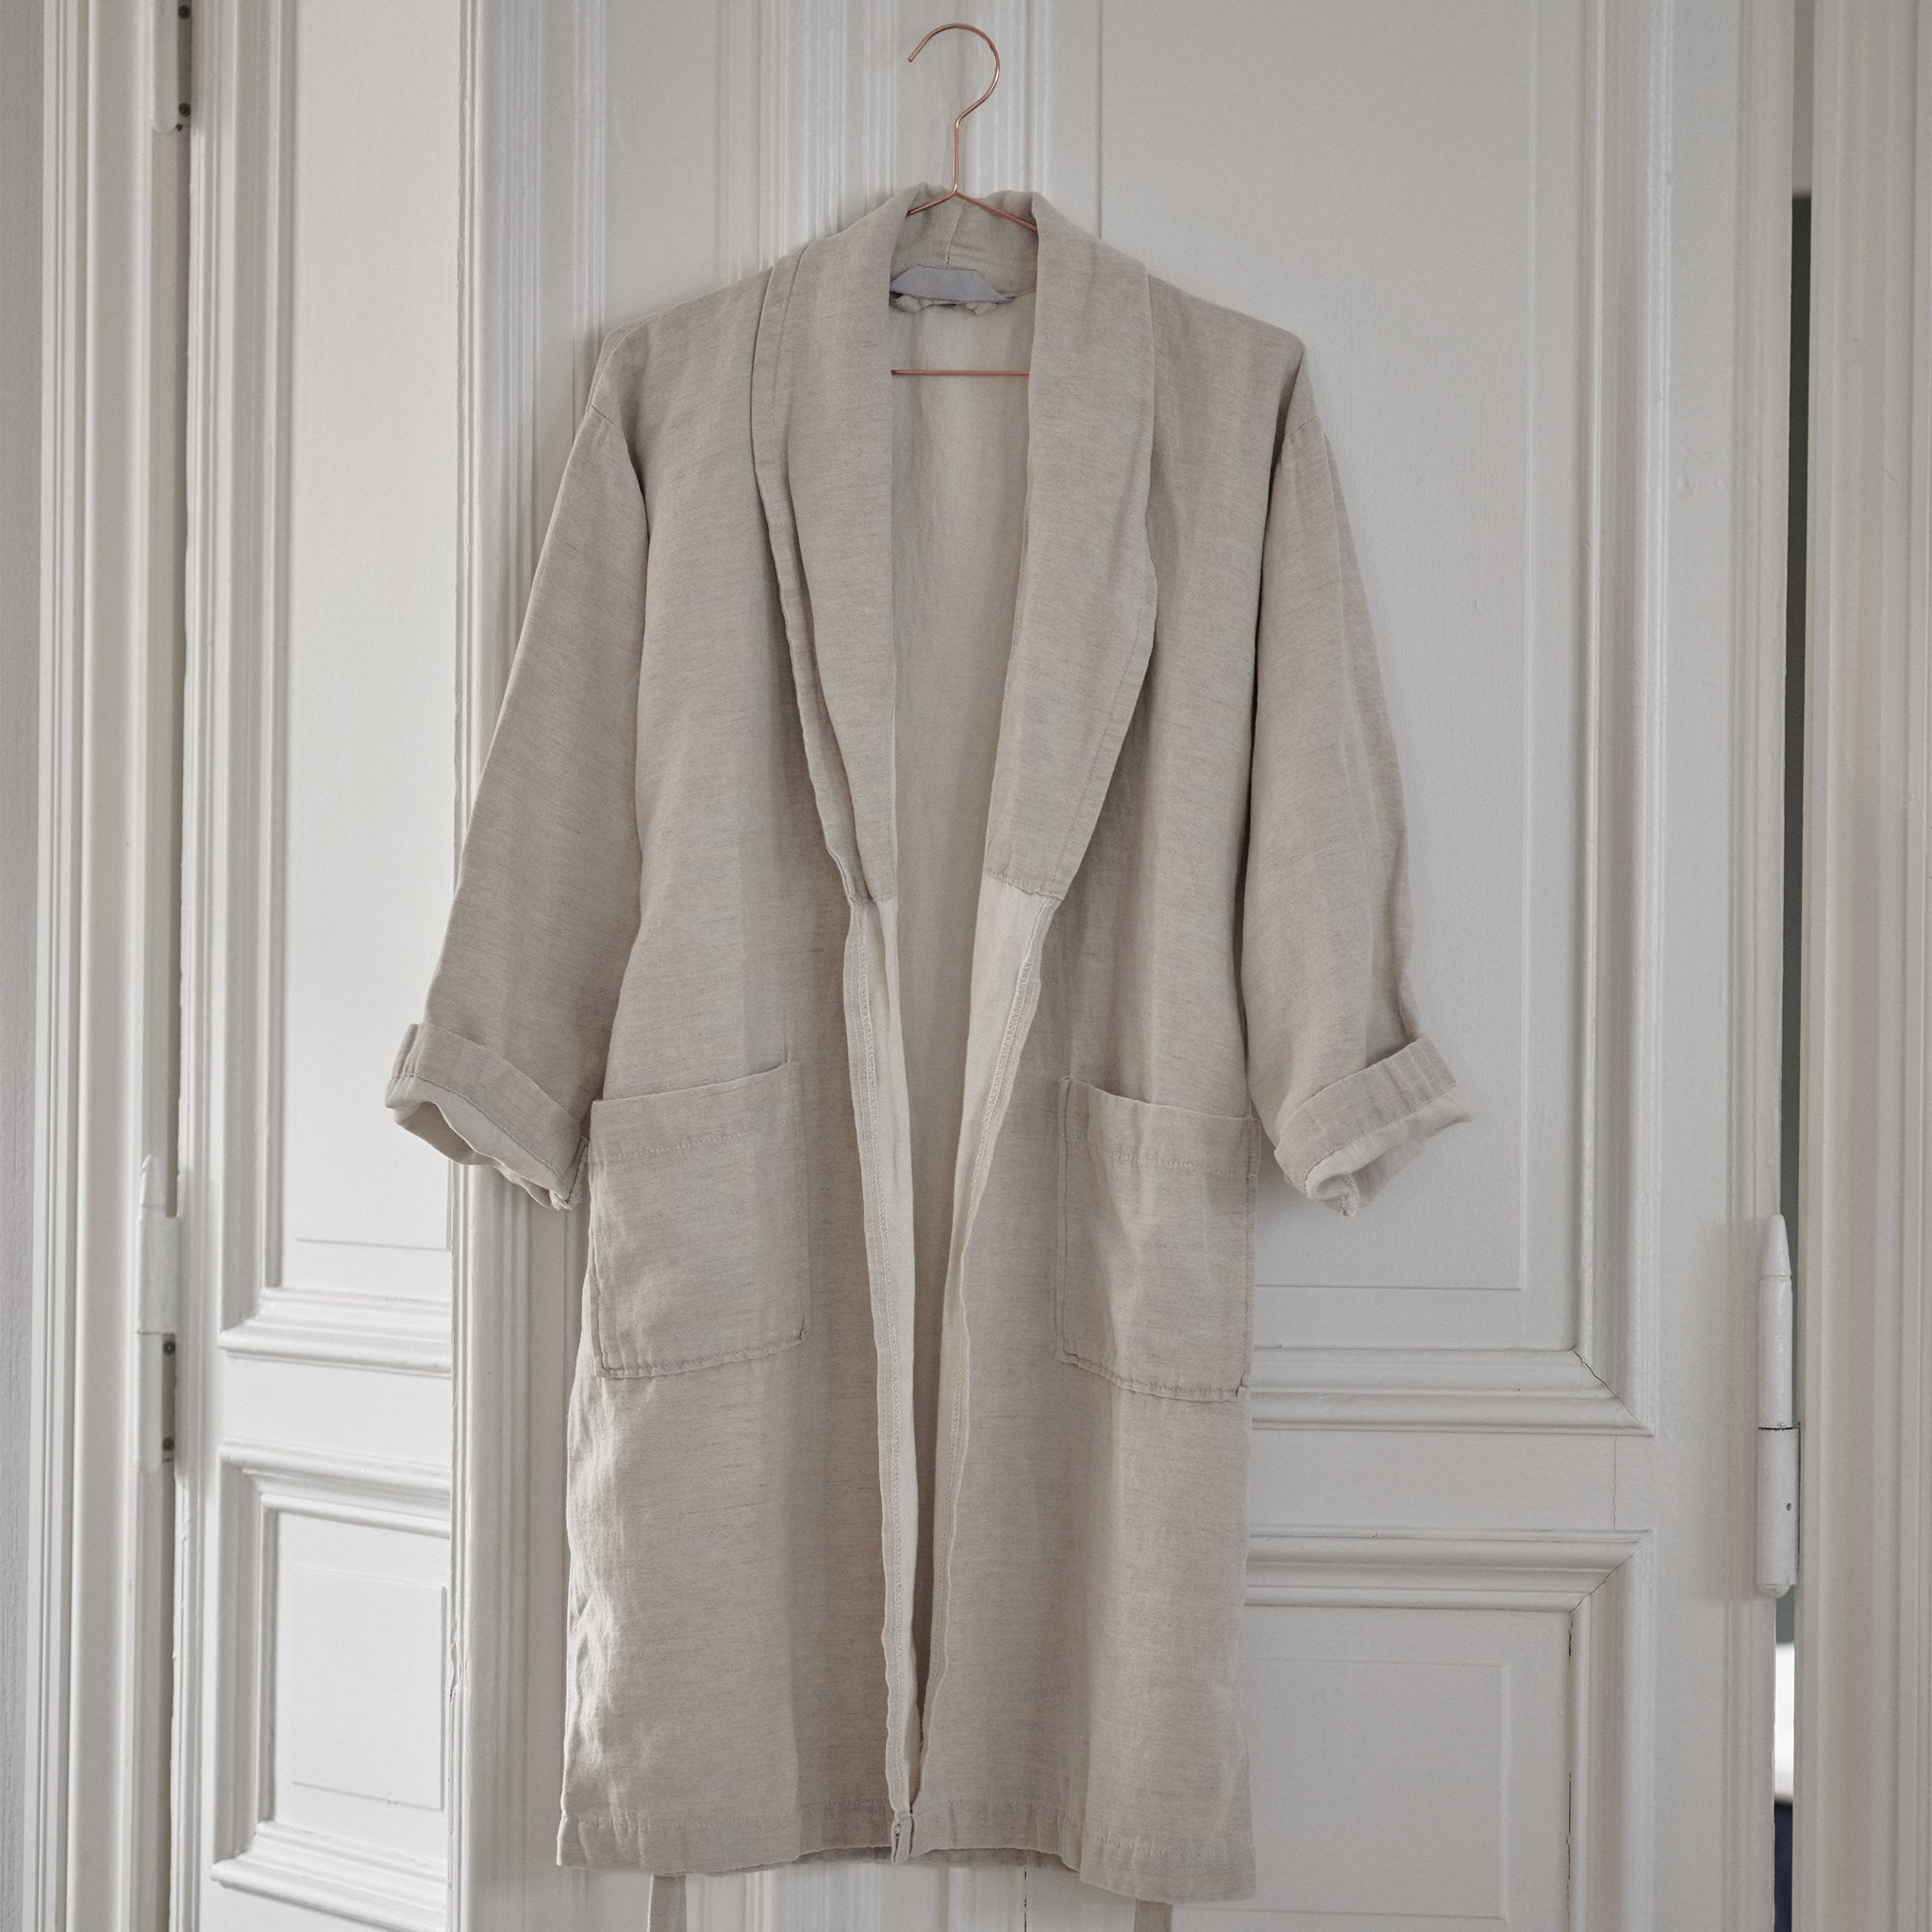 Antero Bathrobe in natural | Home & Living inspiration | URBANARA